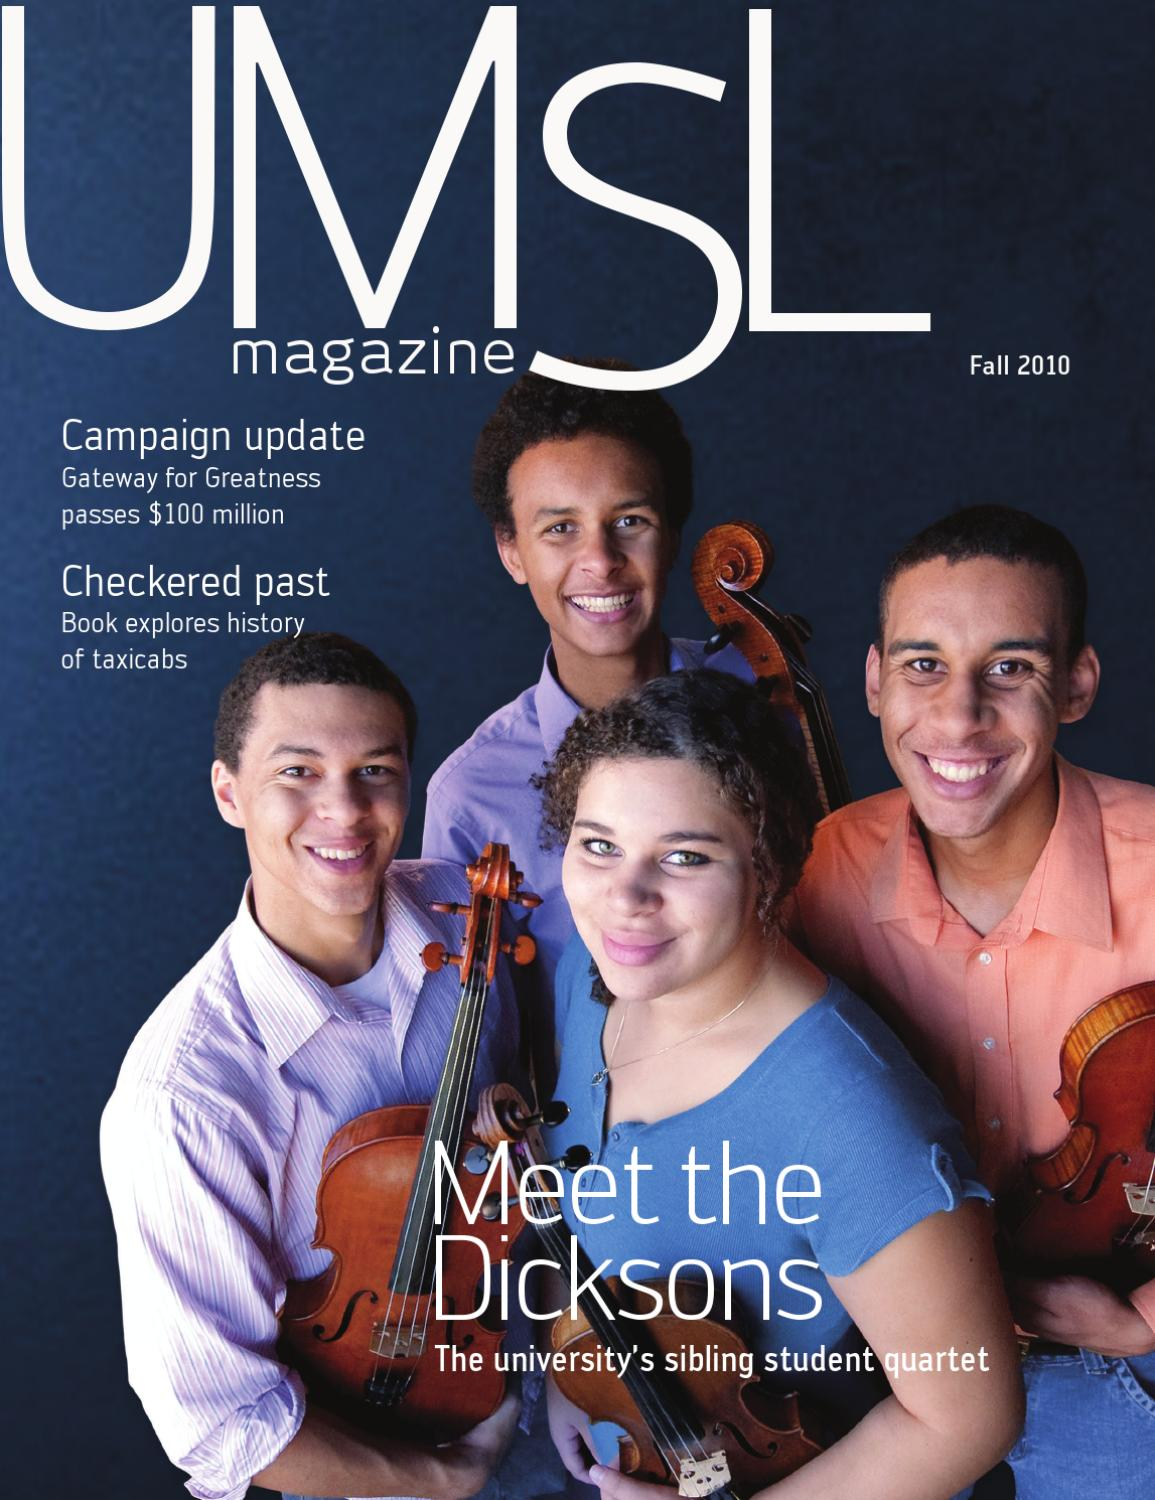 St Louis Taxi >> UMSL Magazine: fall 2010 by University of Missouri–St. Louis - Issuu